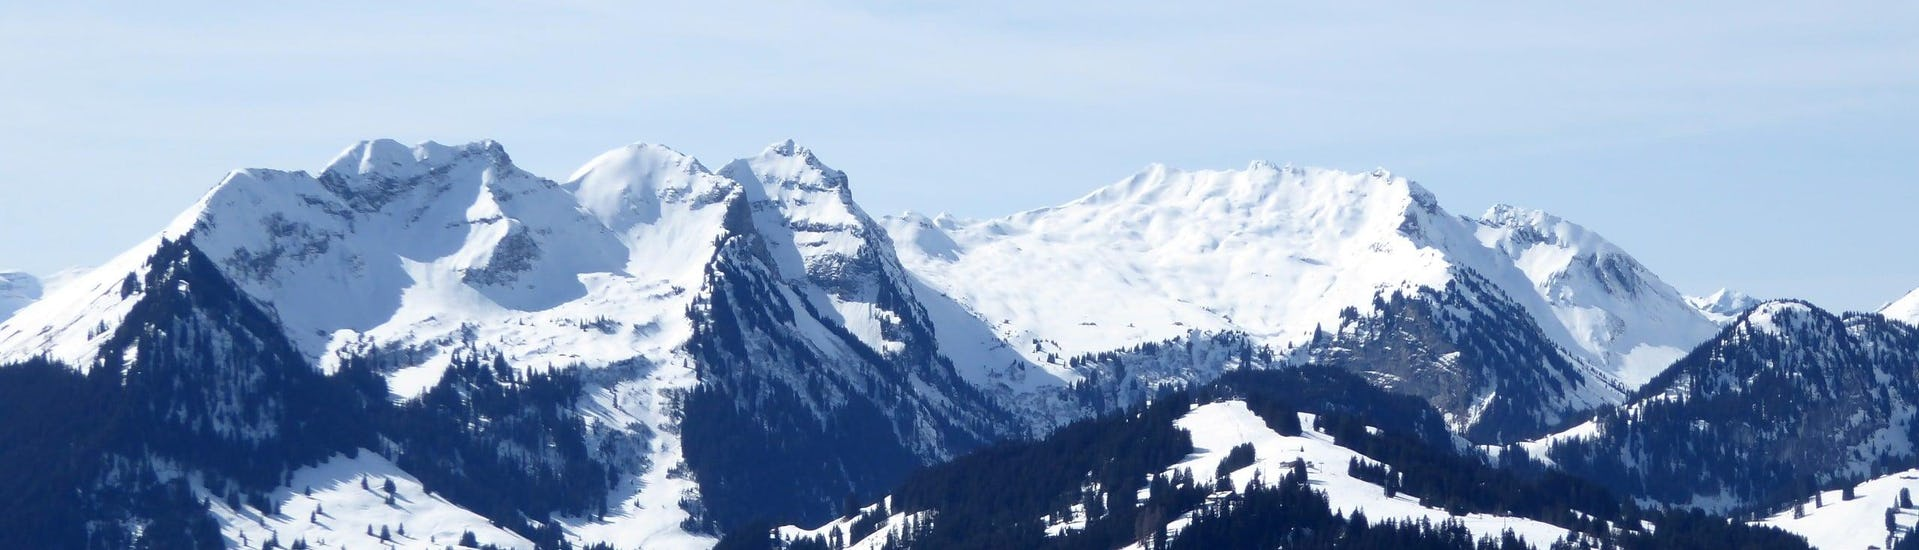 View over the sunny mountain landscape while learning to ski with the ski schools in Gstaad-Saanen.